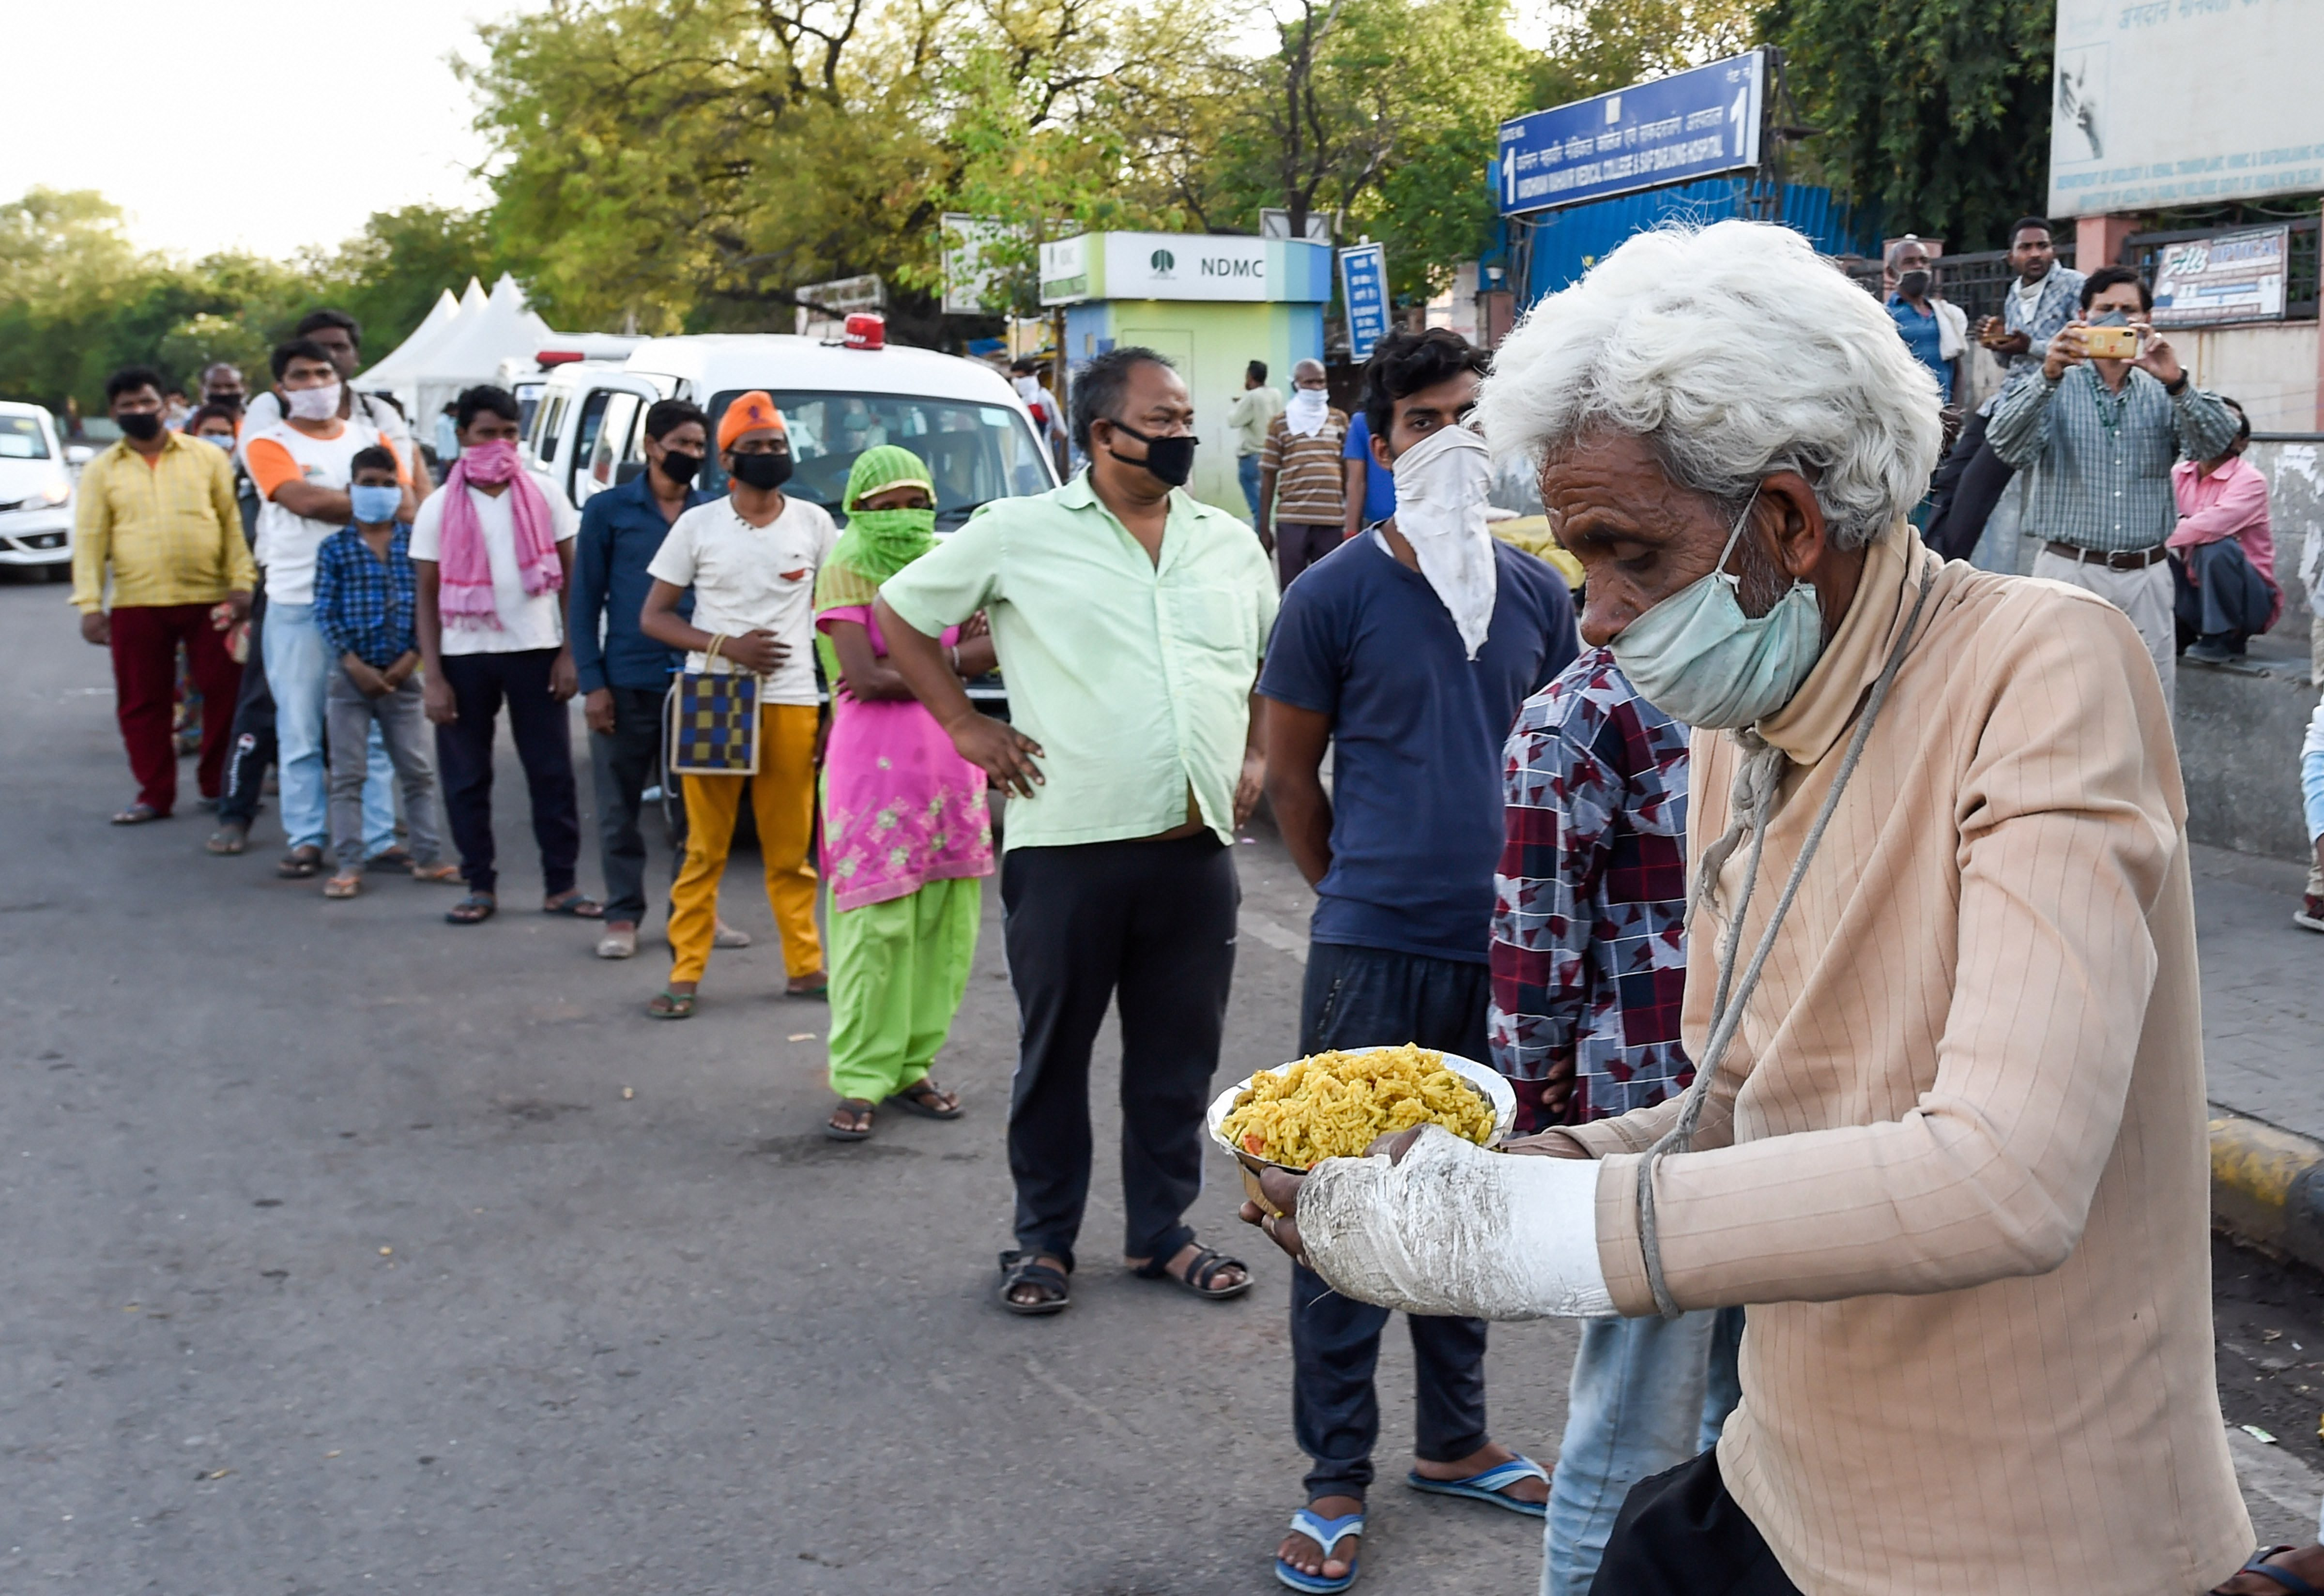 A man carries a plate of food distributed by volunteers near Safdurjung Hospital during the nationwide lockdown, imposed in a bid to contain the coronavirus pandemic, in New Delhi, Monday, April 6, 2020.